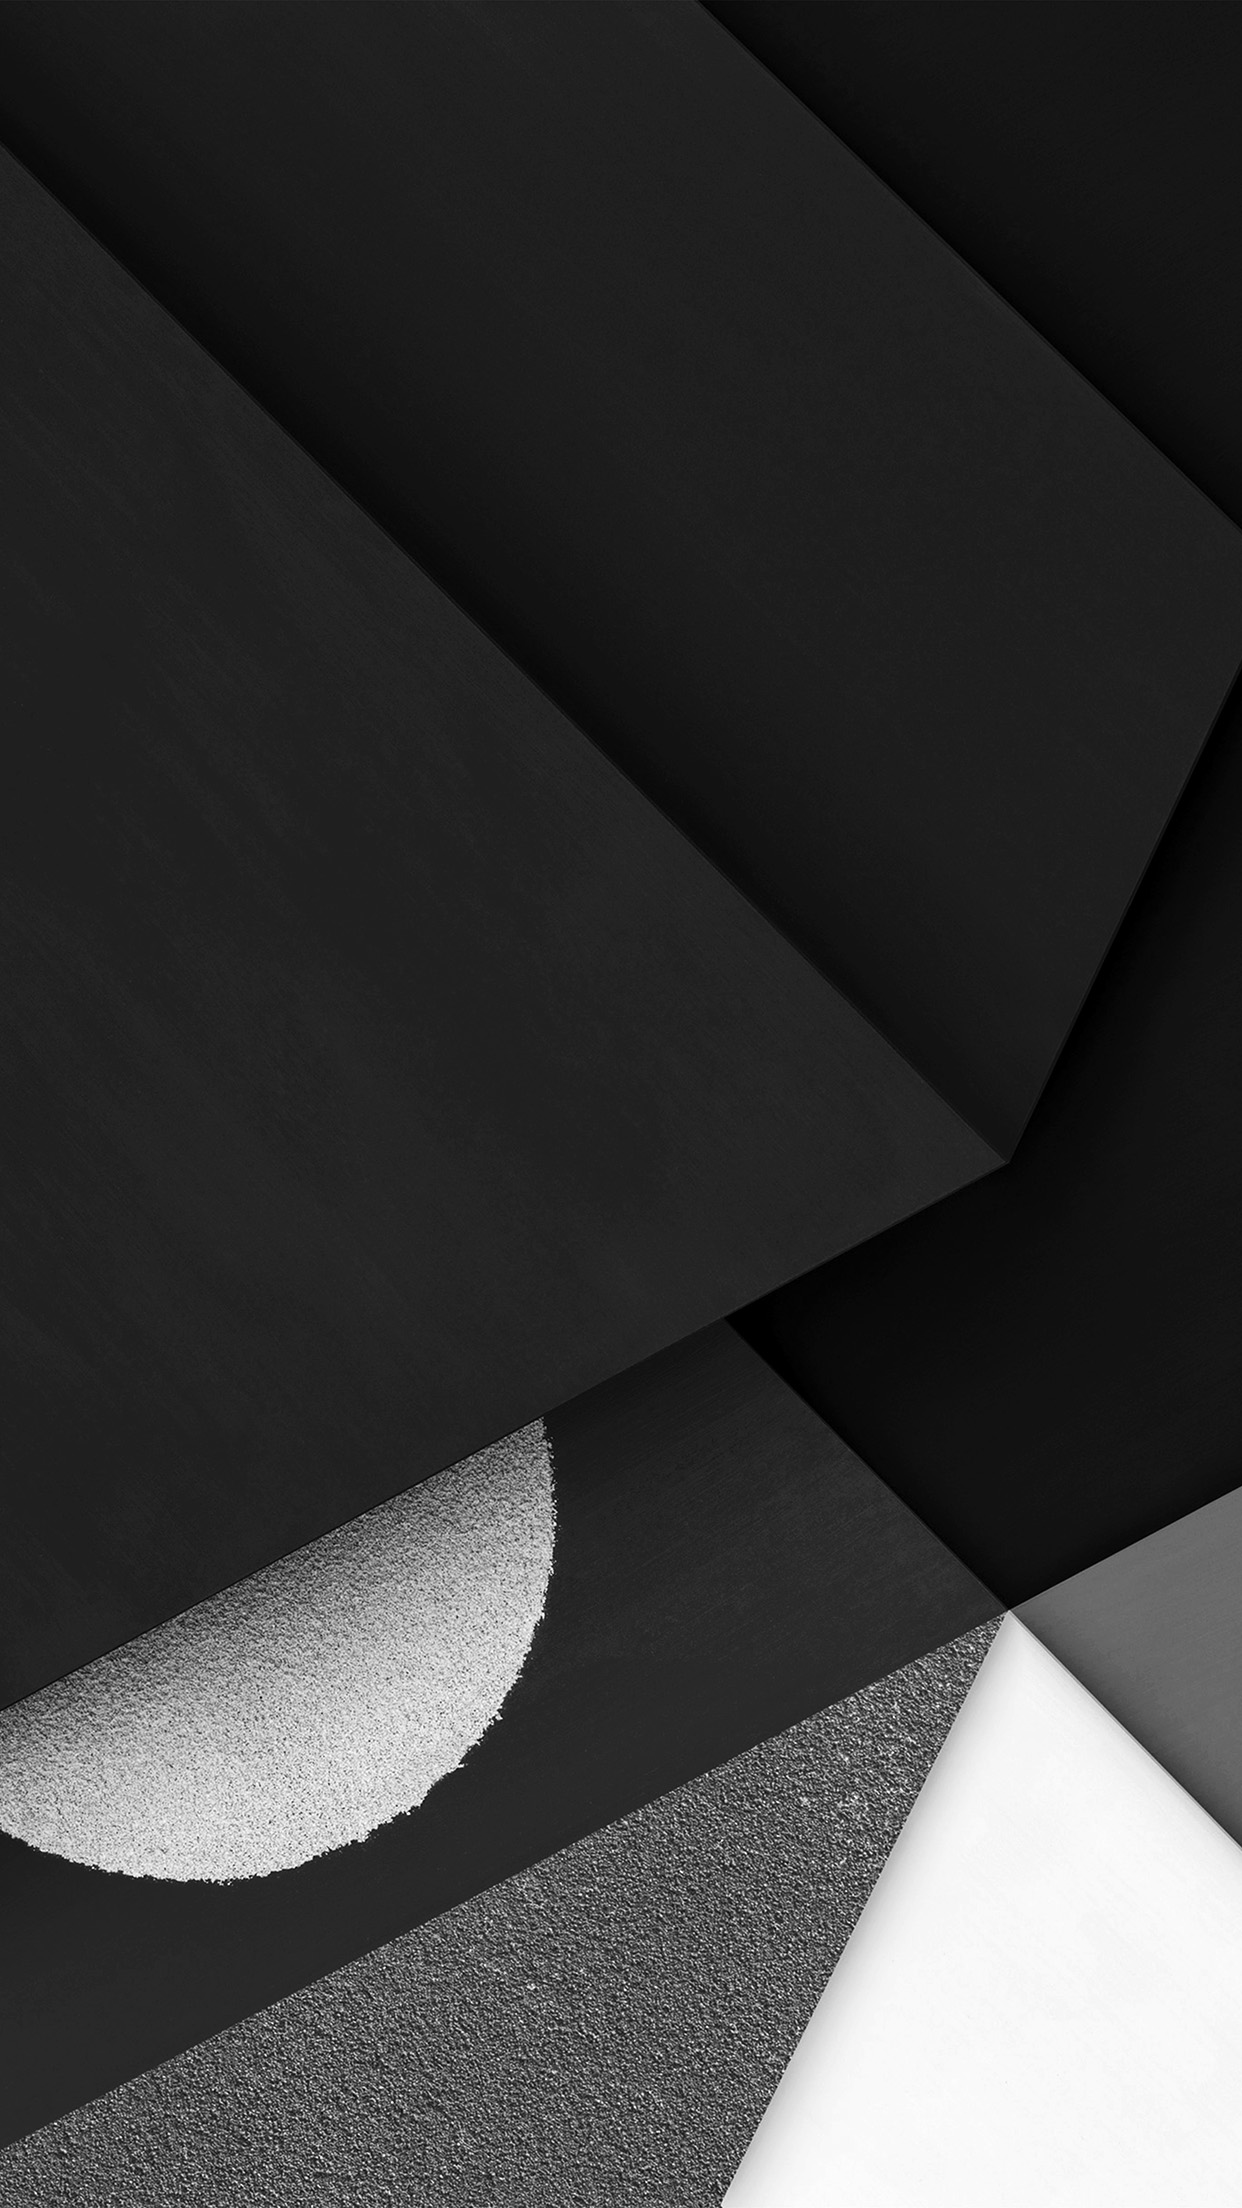 Abstract Earth Art Poly Dark Bw Galaxy Pattern Android